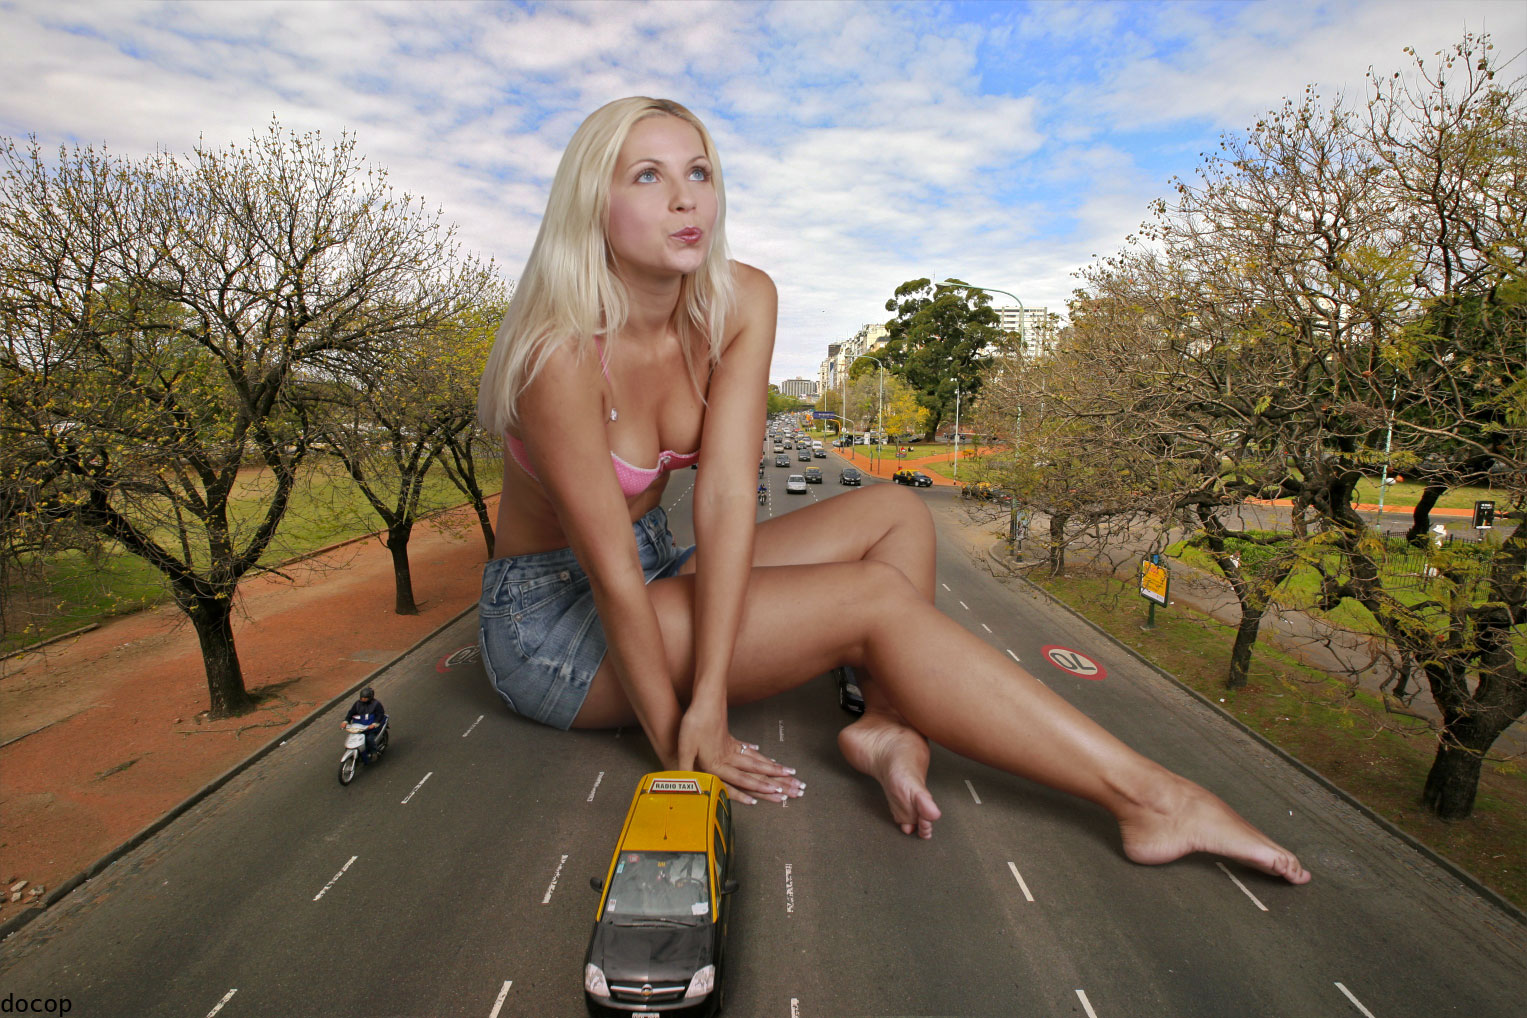 156431 - barefoot blocking_traffic blonde cars cleavage collage docop giantess jenni_czech legs sitting street